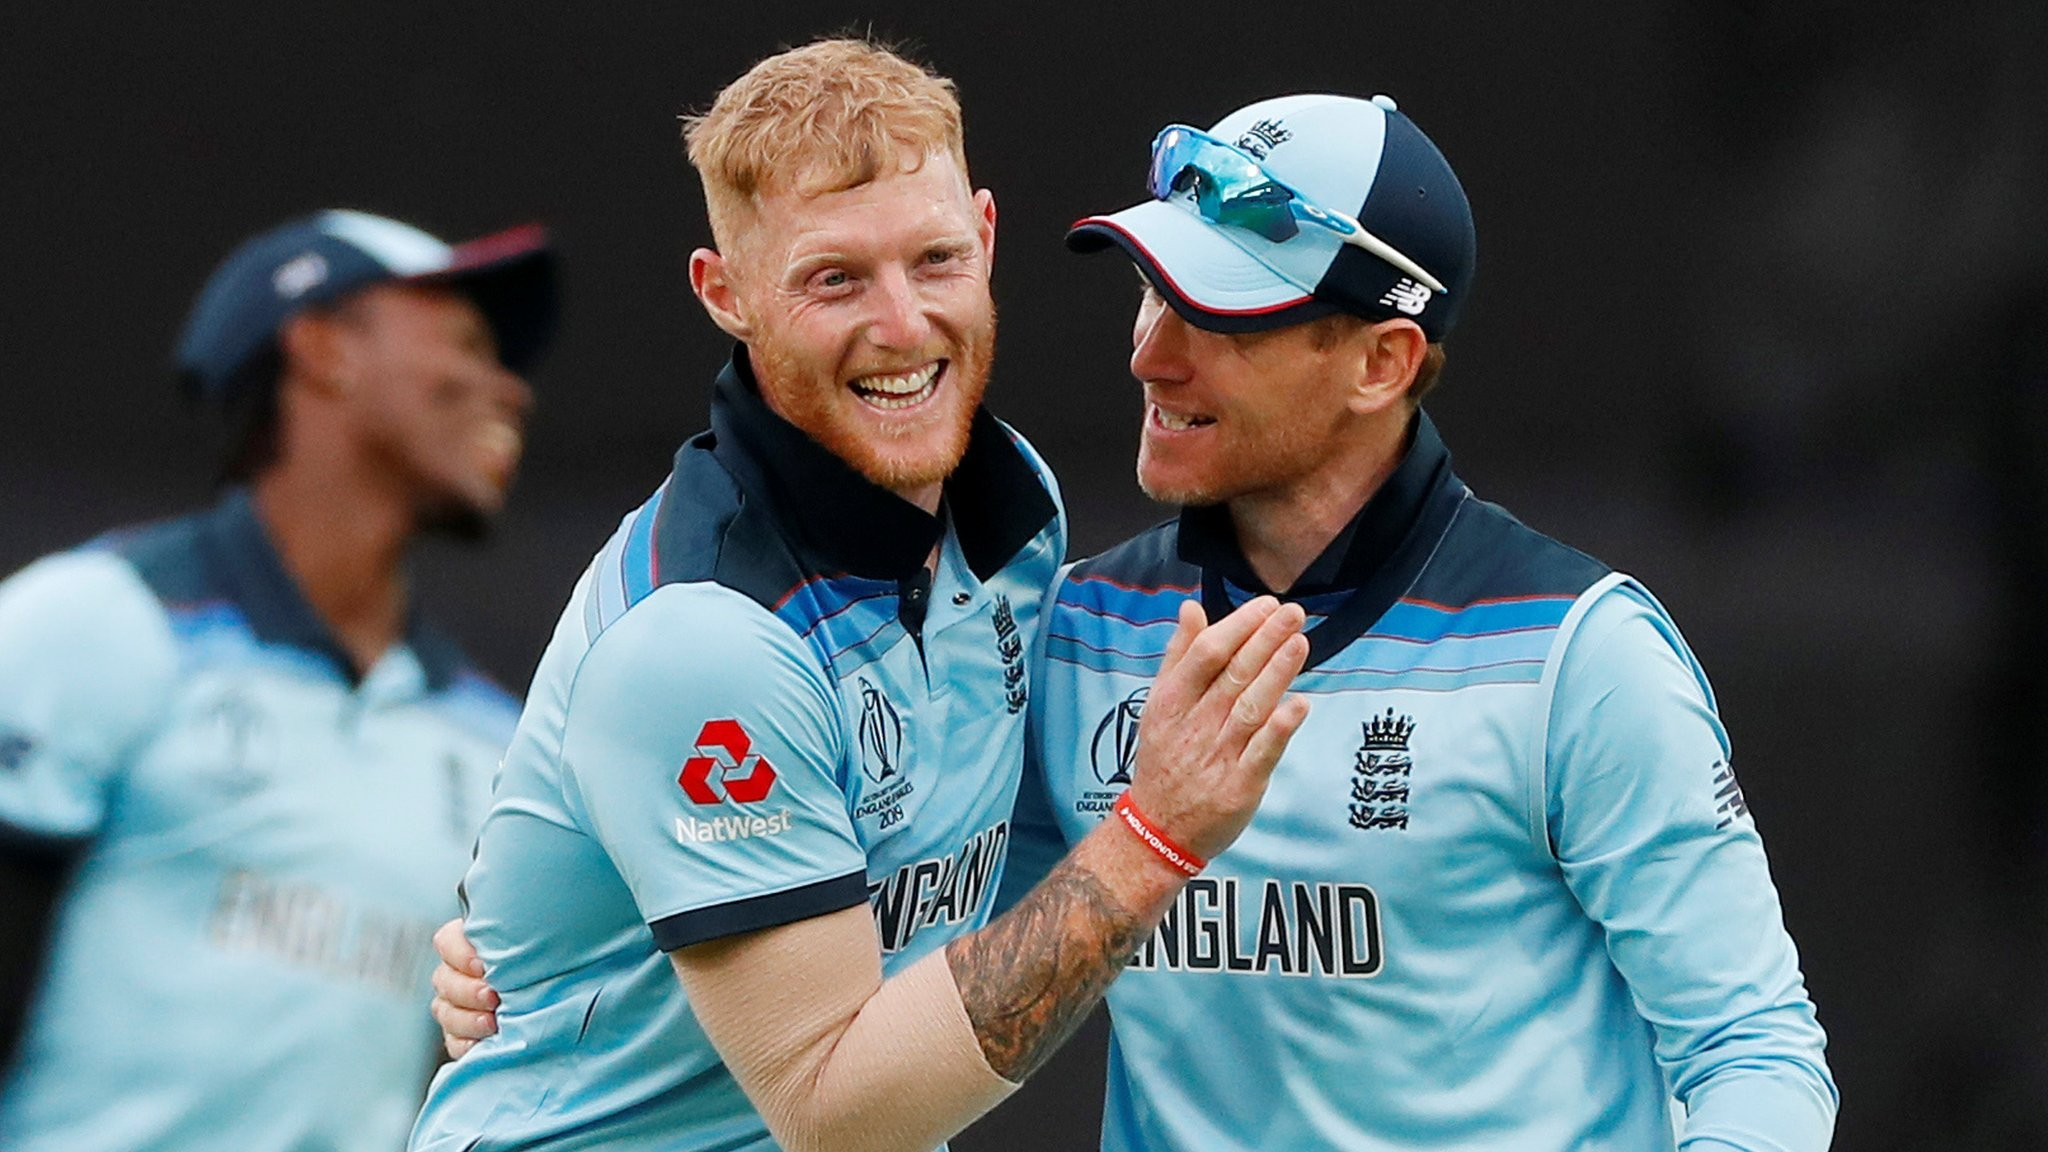 Cricket World Cup final could be free-to-air says ICC